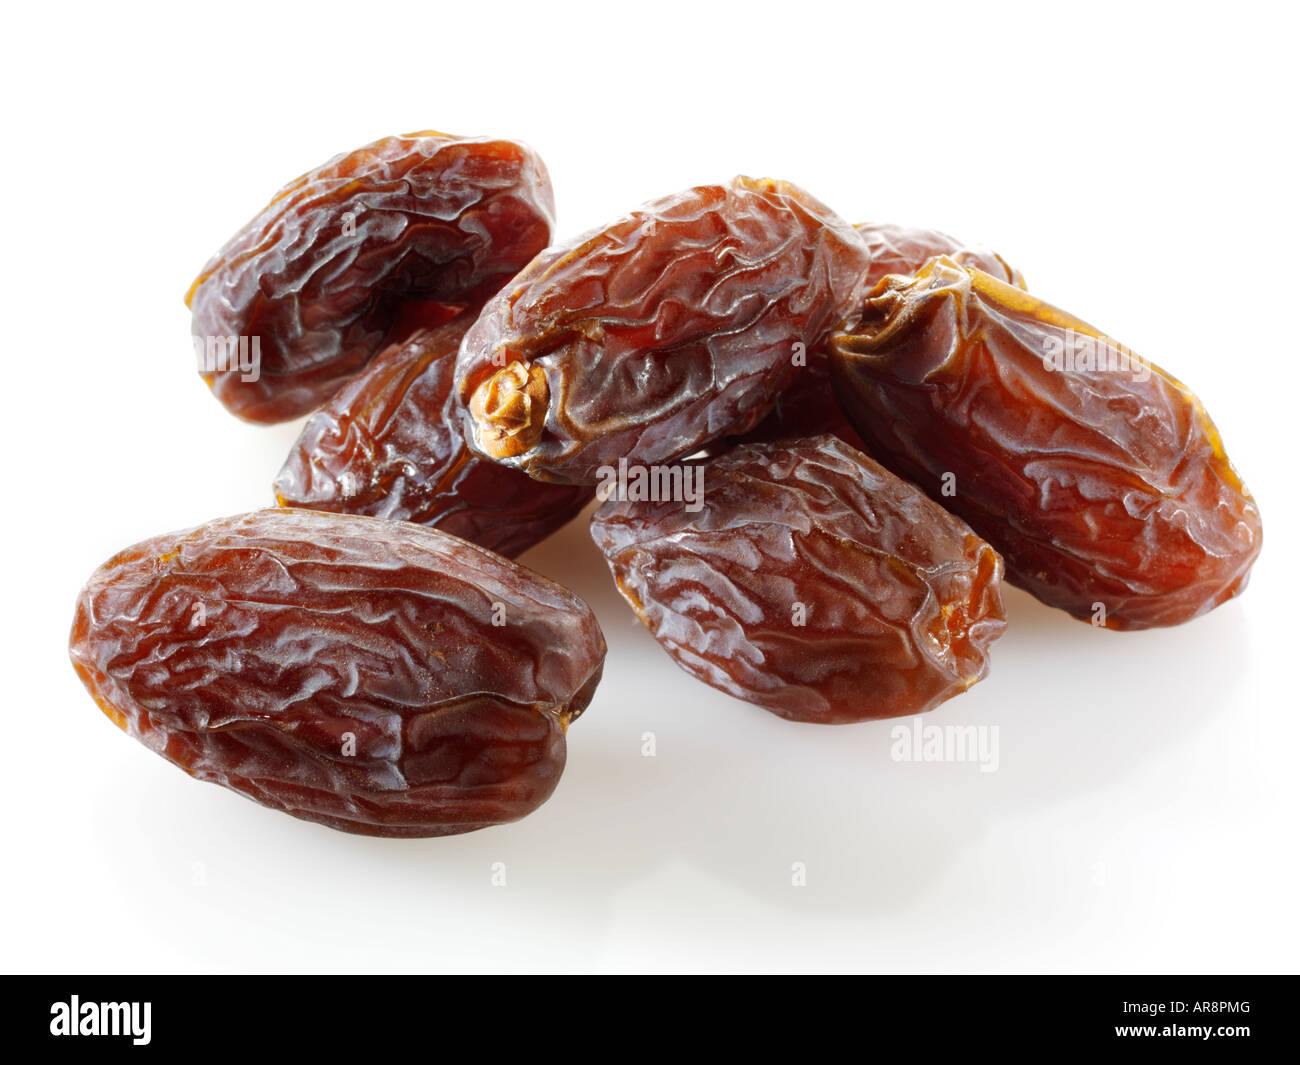 Fresh whole dried dates Fresh whole dates against a white background for cut out - Stock Image